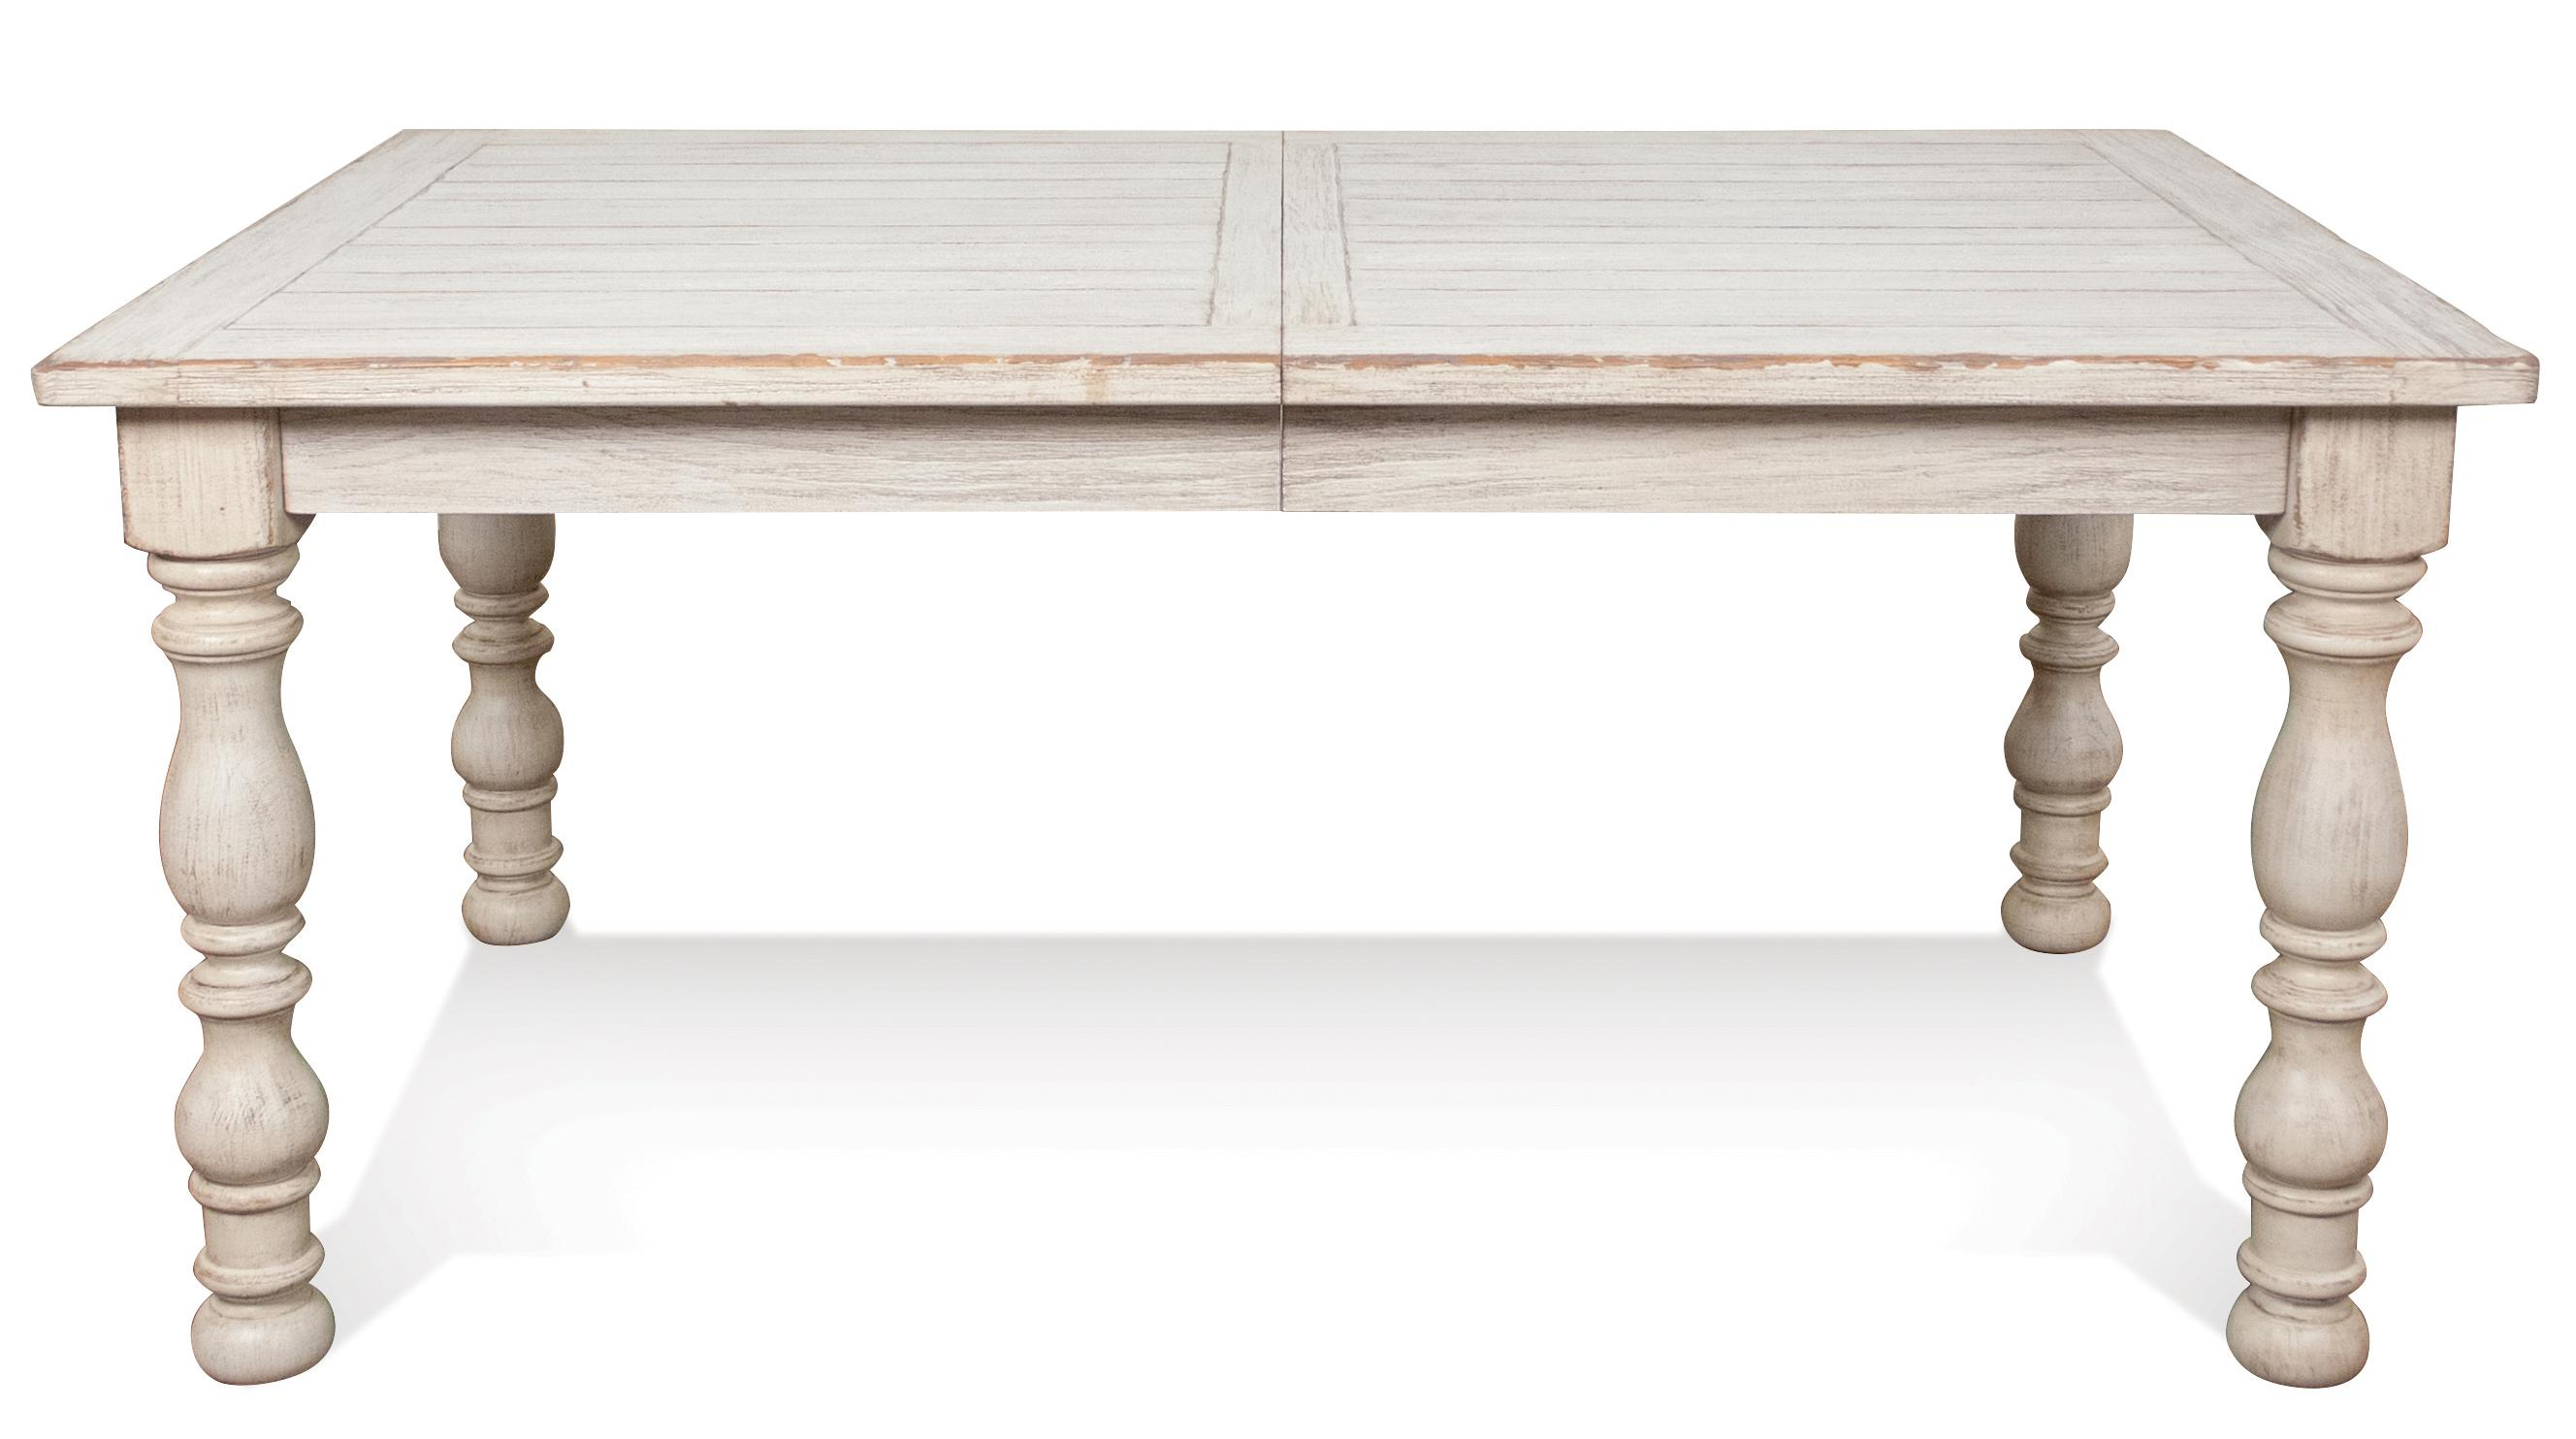 Aberdeen Rectangular Dining Table by Riverside Furniture at O'Dunk & O'Bright Furniture